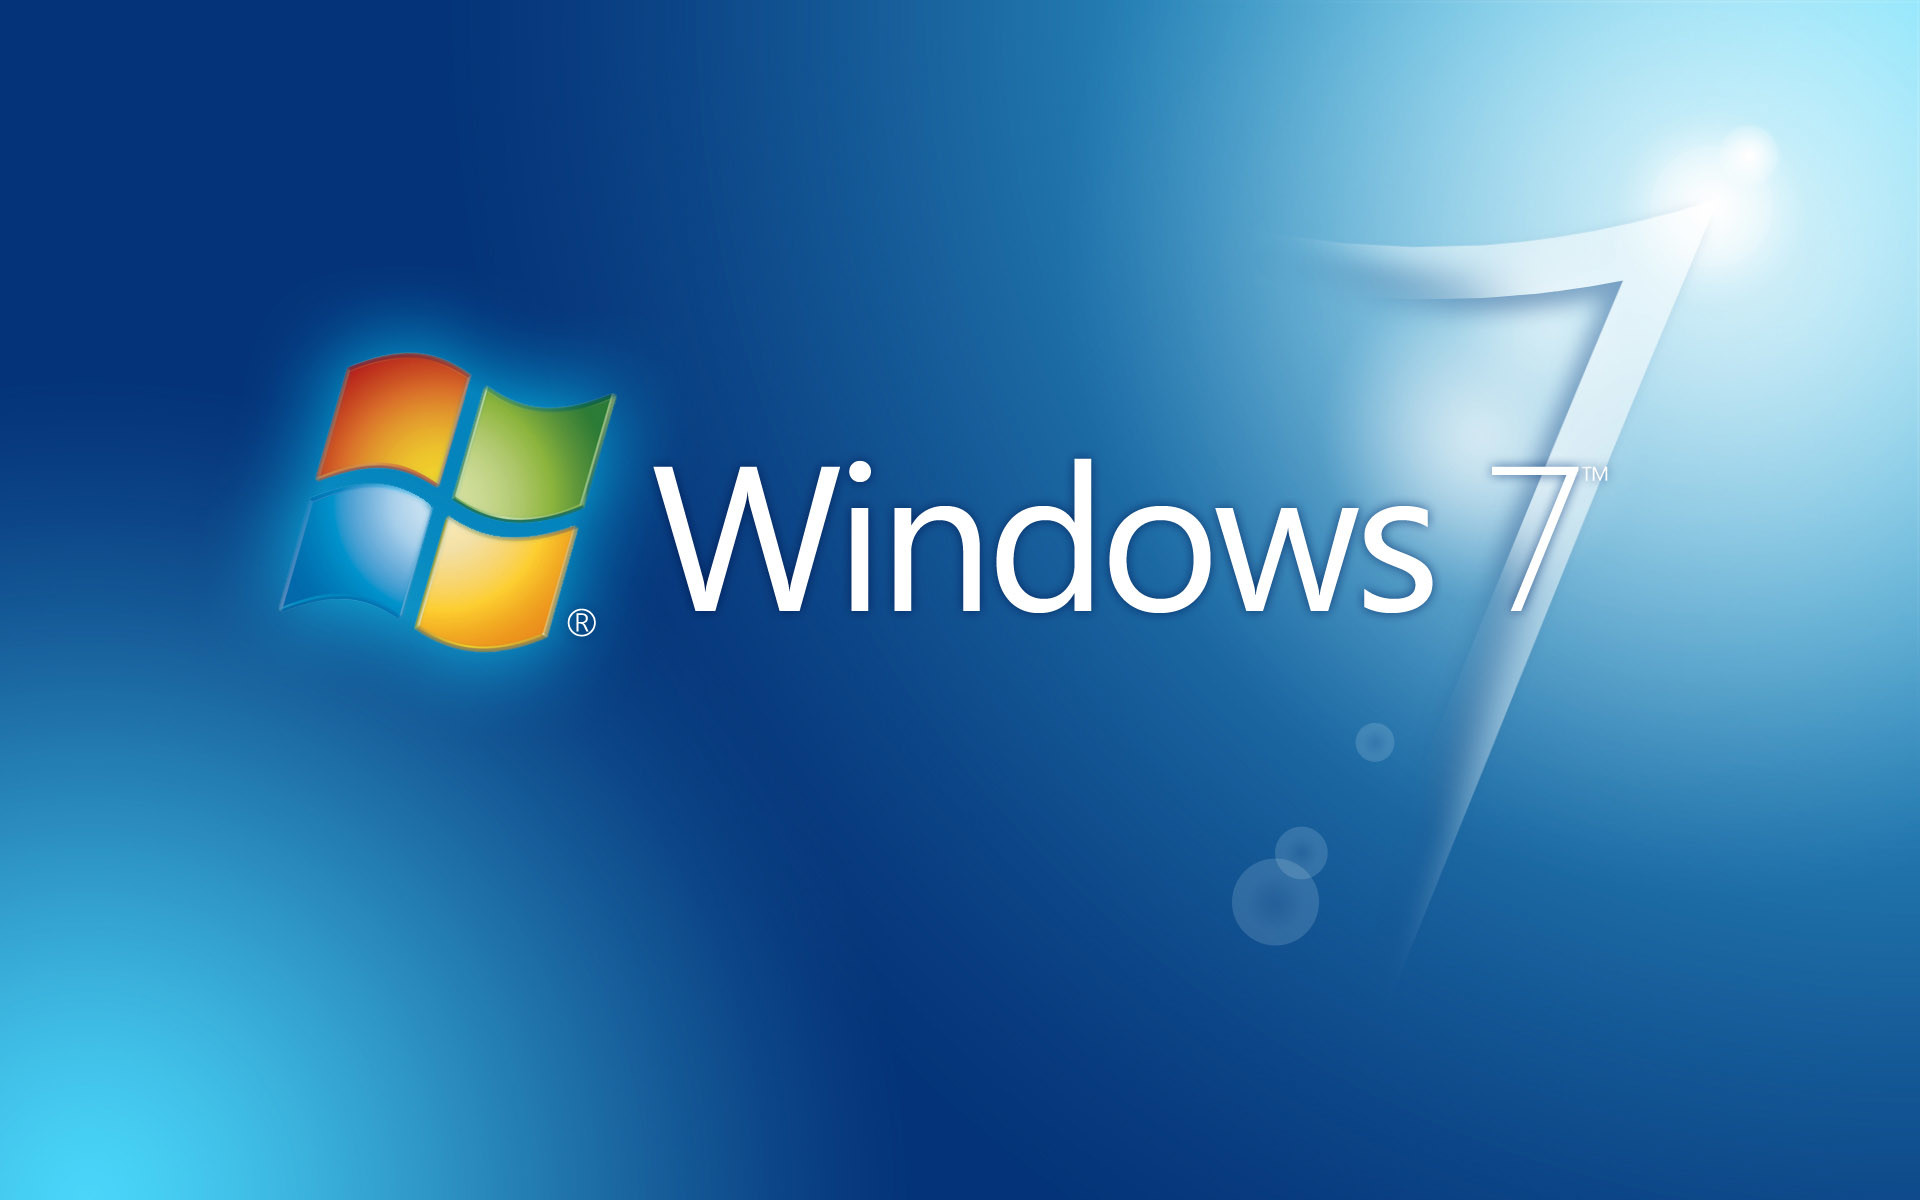 1920x1200 Microsoft Windows 7 HD Background Wallpaper